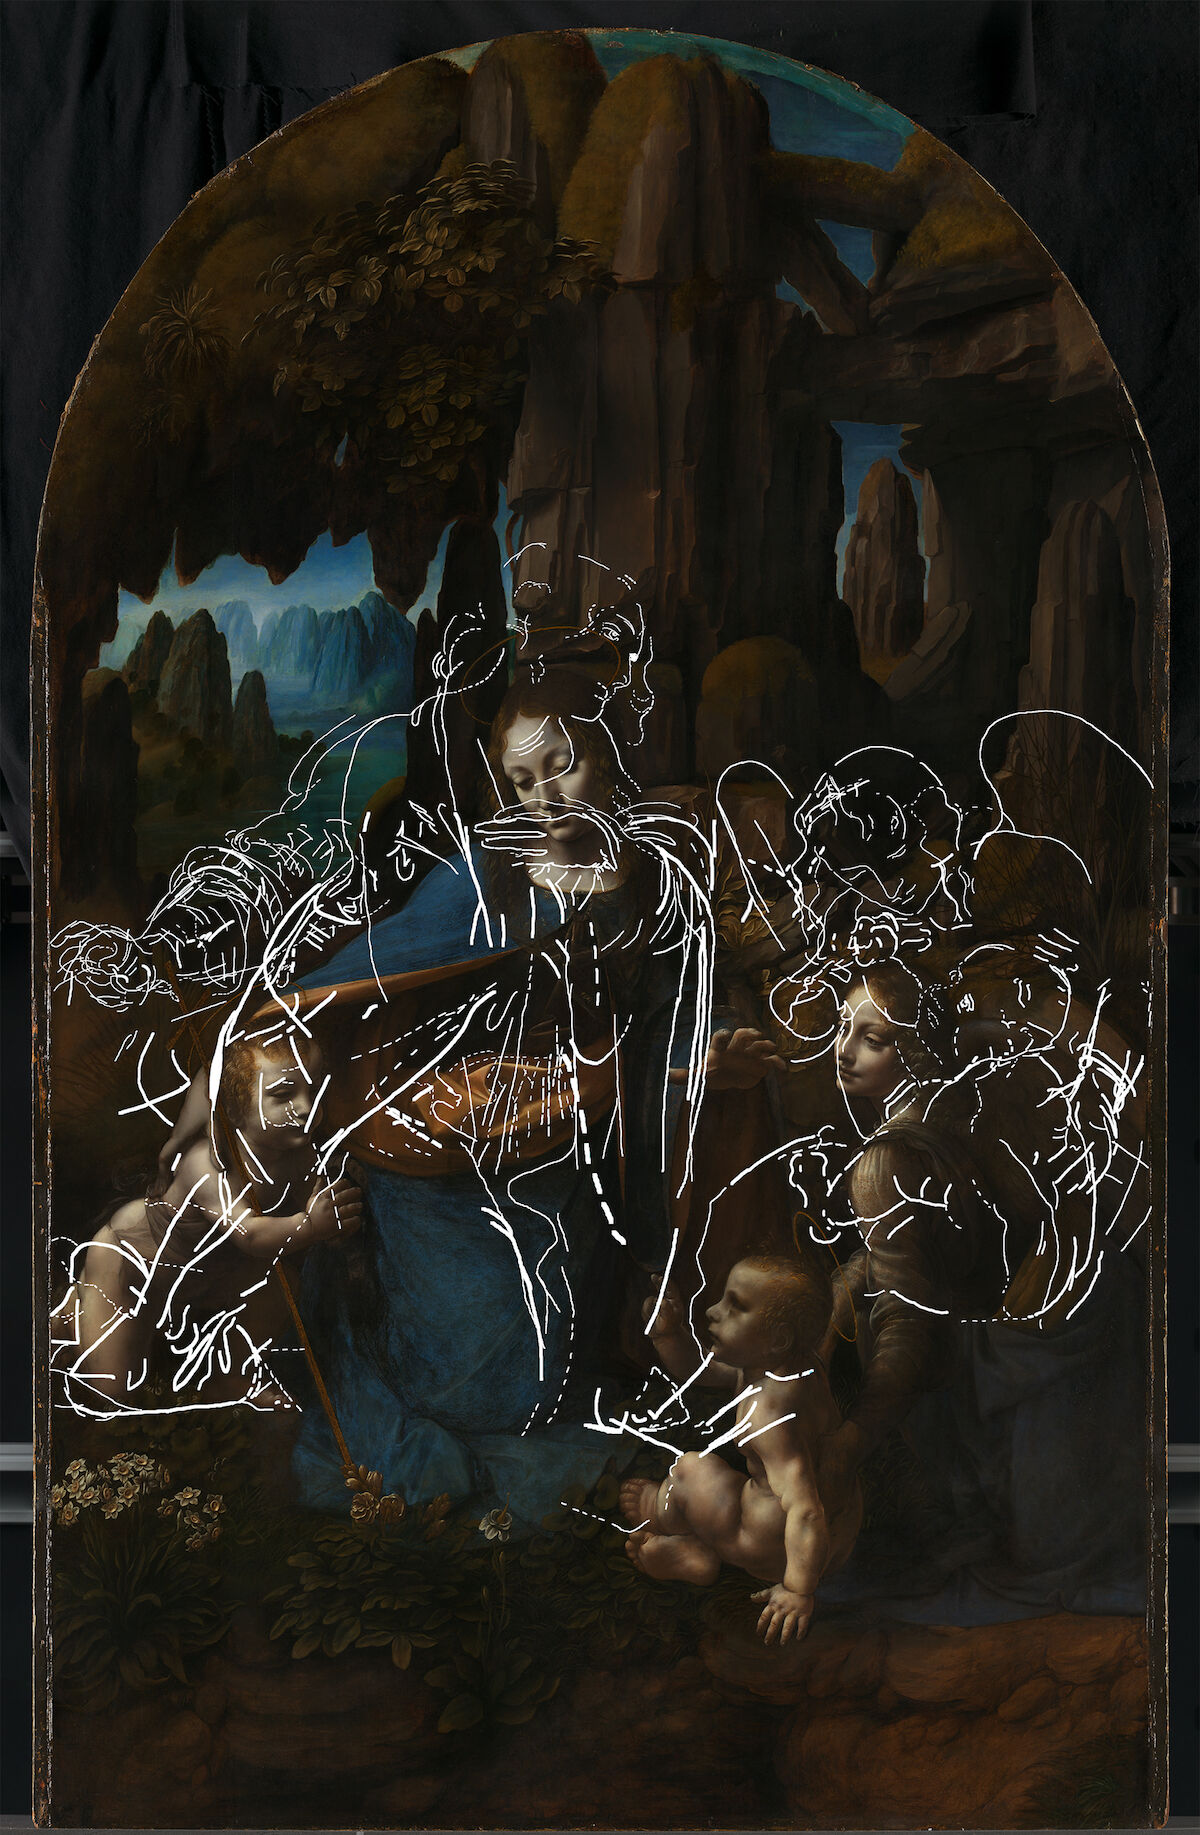 Leonardo da Vinci, The Virgin of the Rocks, with tracing of the lines relating to underdrawing for the first composition, incorporating information from all technical images. © The National Gallery, London.